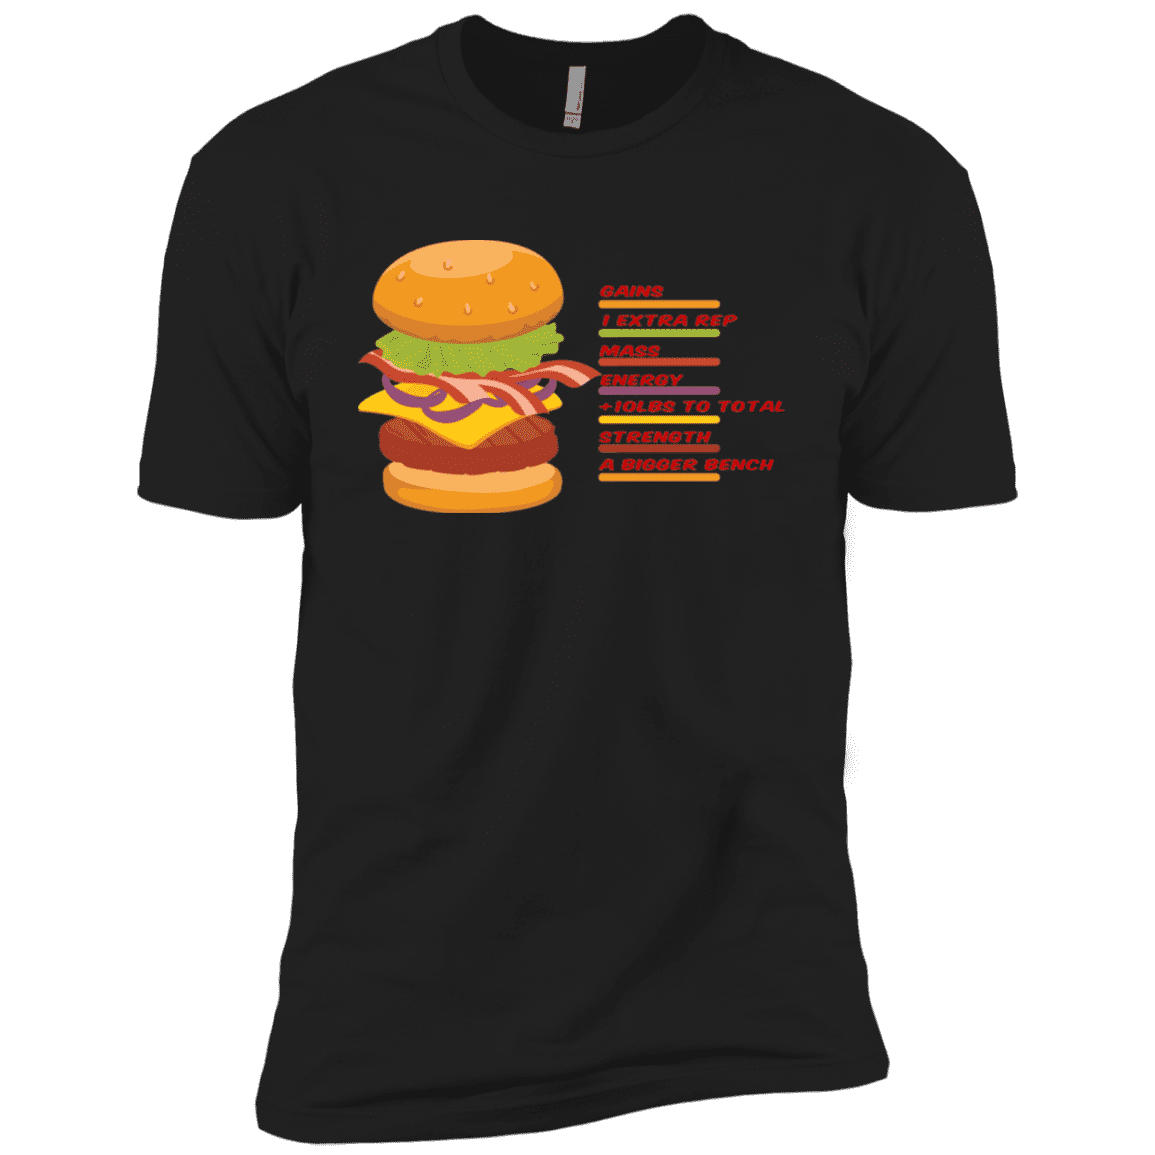 T-Shirts Black / X-Small Anatomy Of A Burger XC Tee